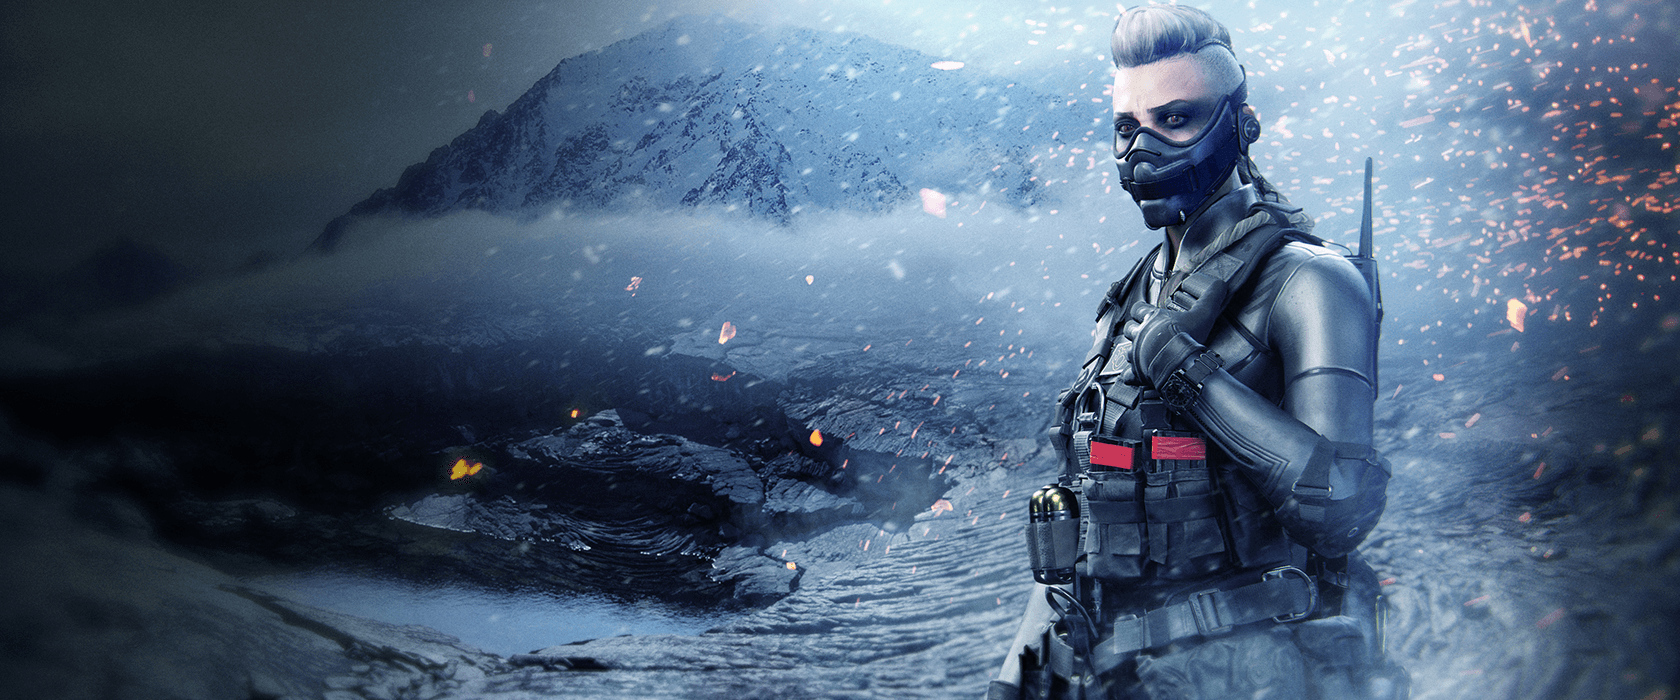 Call of Duty Warzone Season 3 Patch Notes Drop Ahead of Destruction of Verdansk Part 2